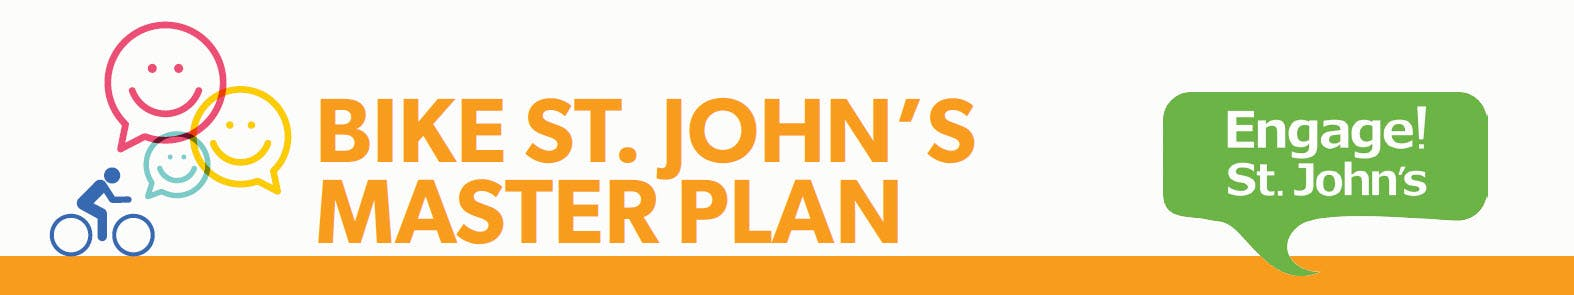 image of logo for Bike St. John's Master Plan